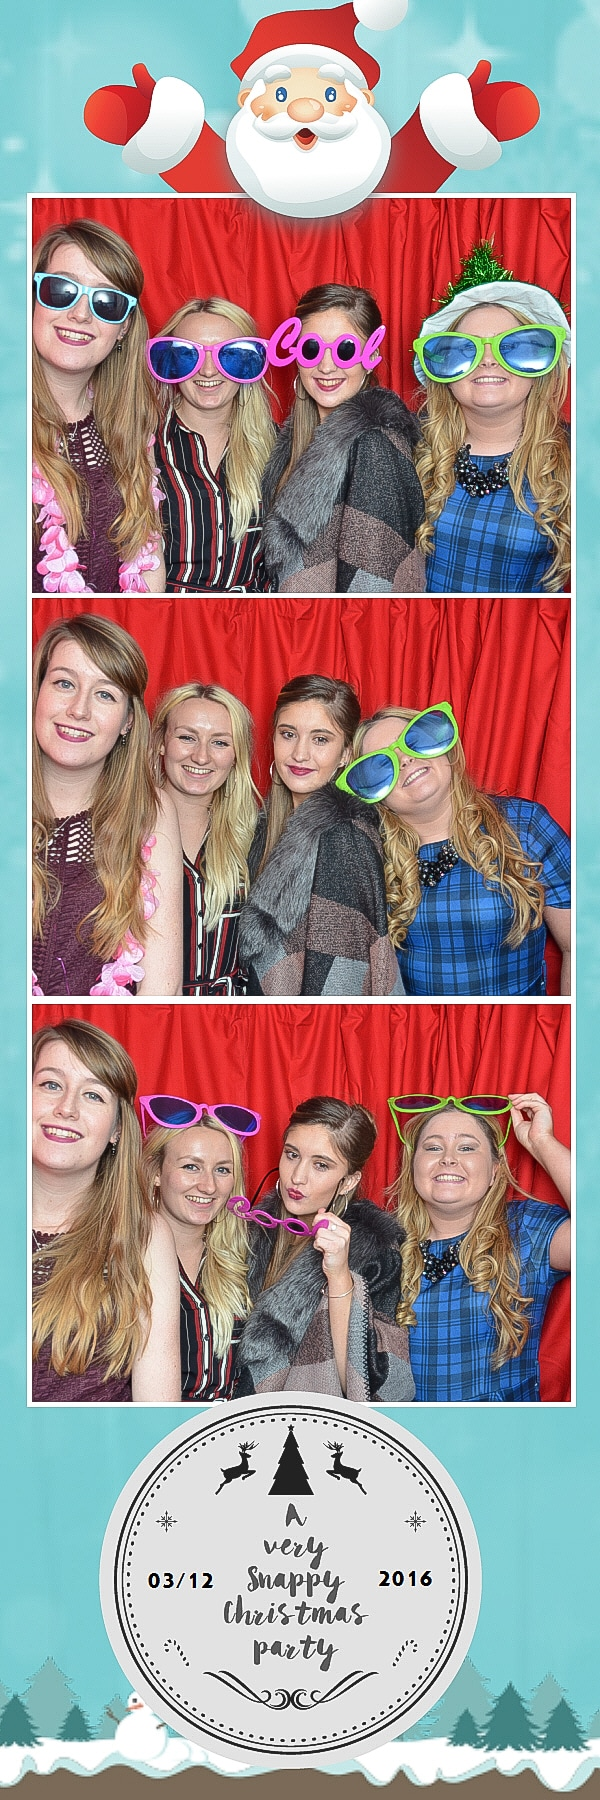 girls in red curtain photo booth